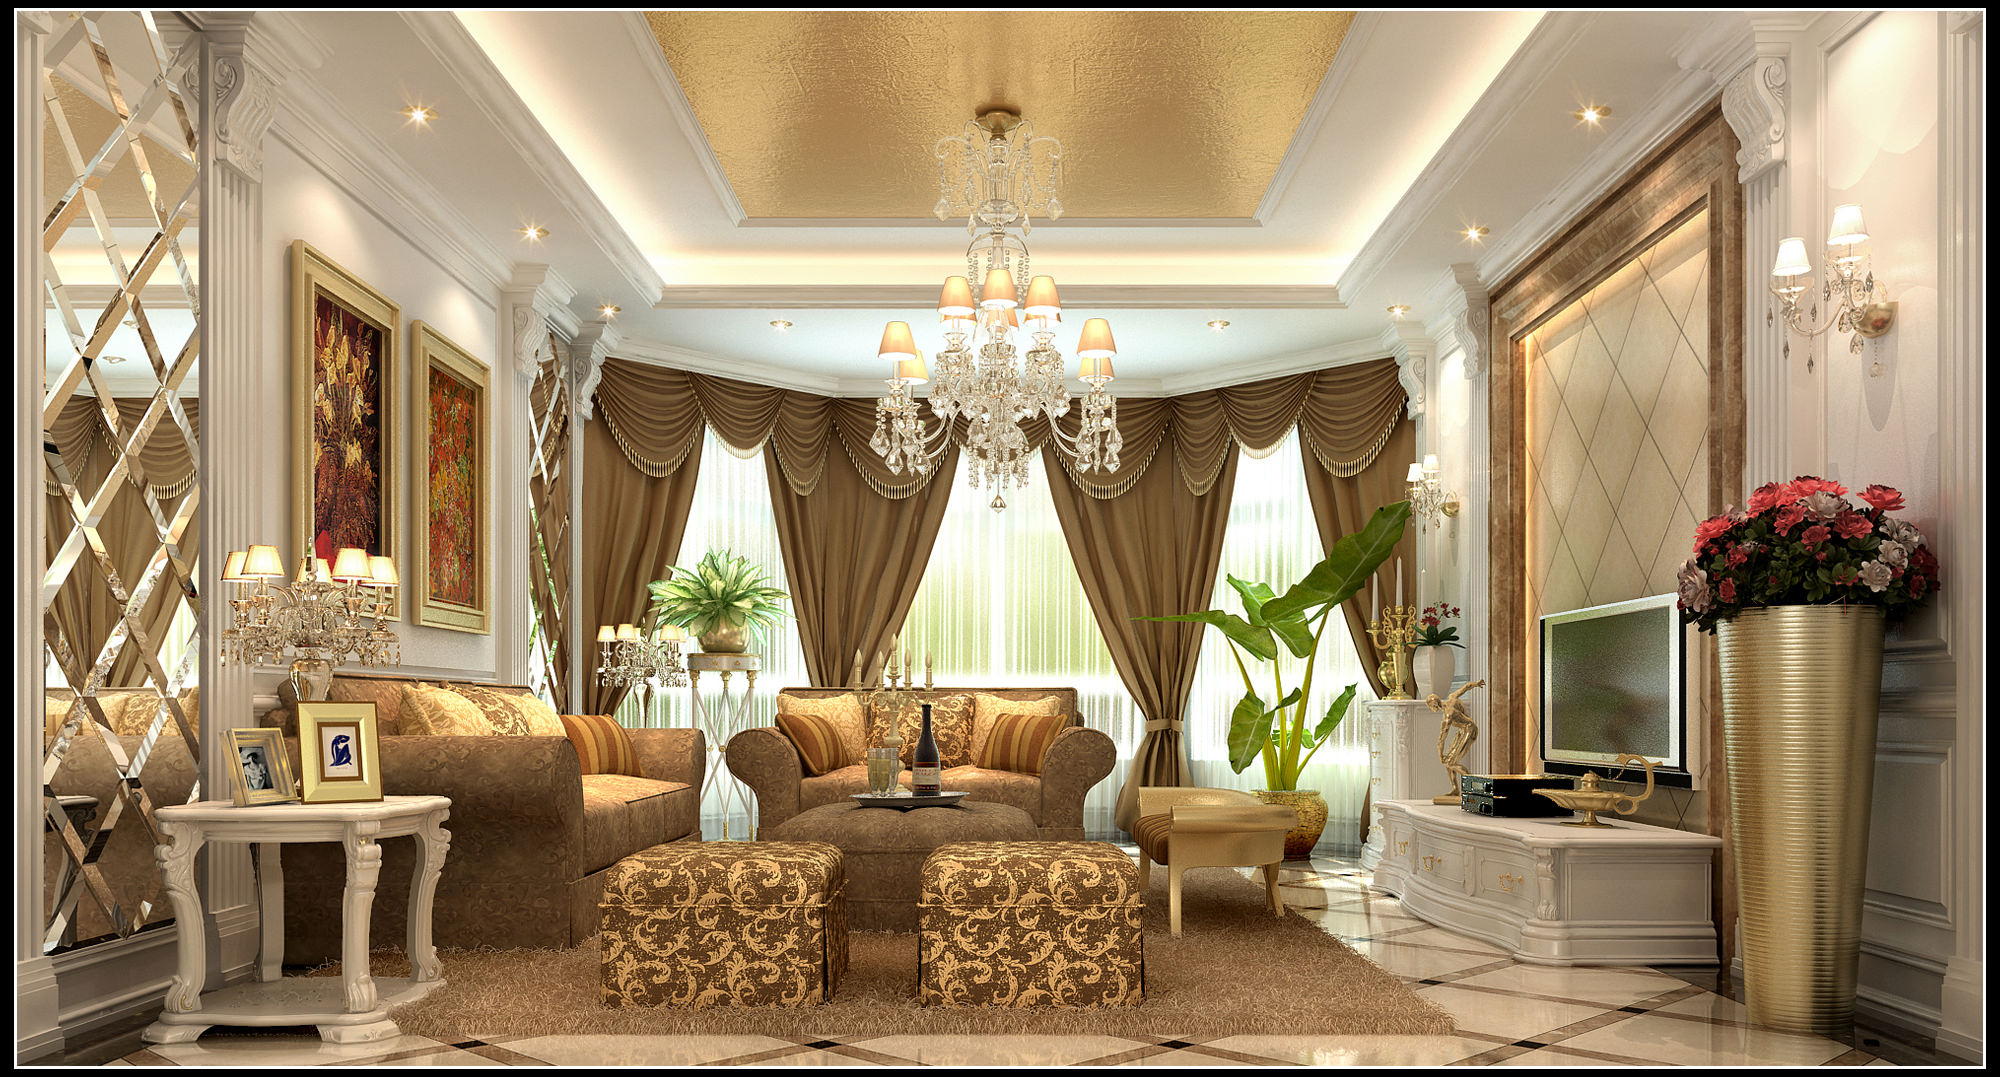 Luxurious Living Room With Curtains 3d Model Max 1